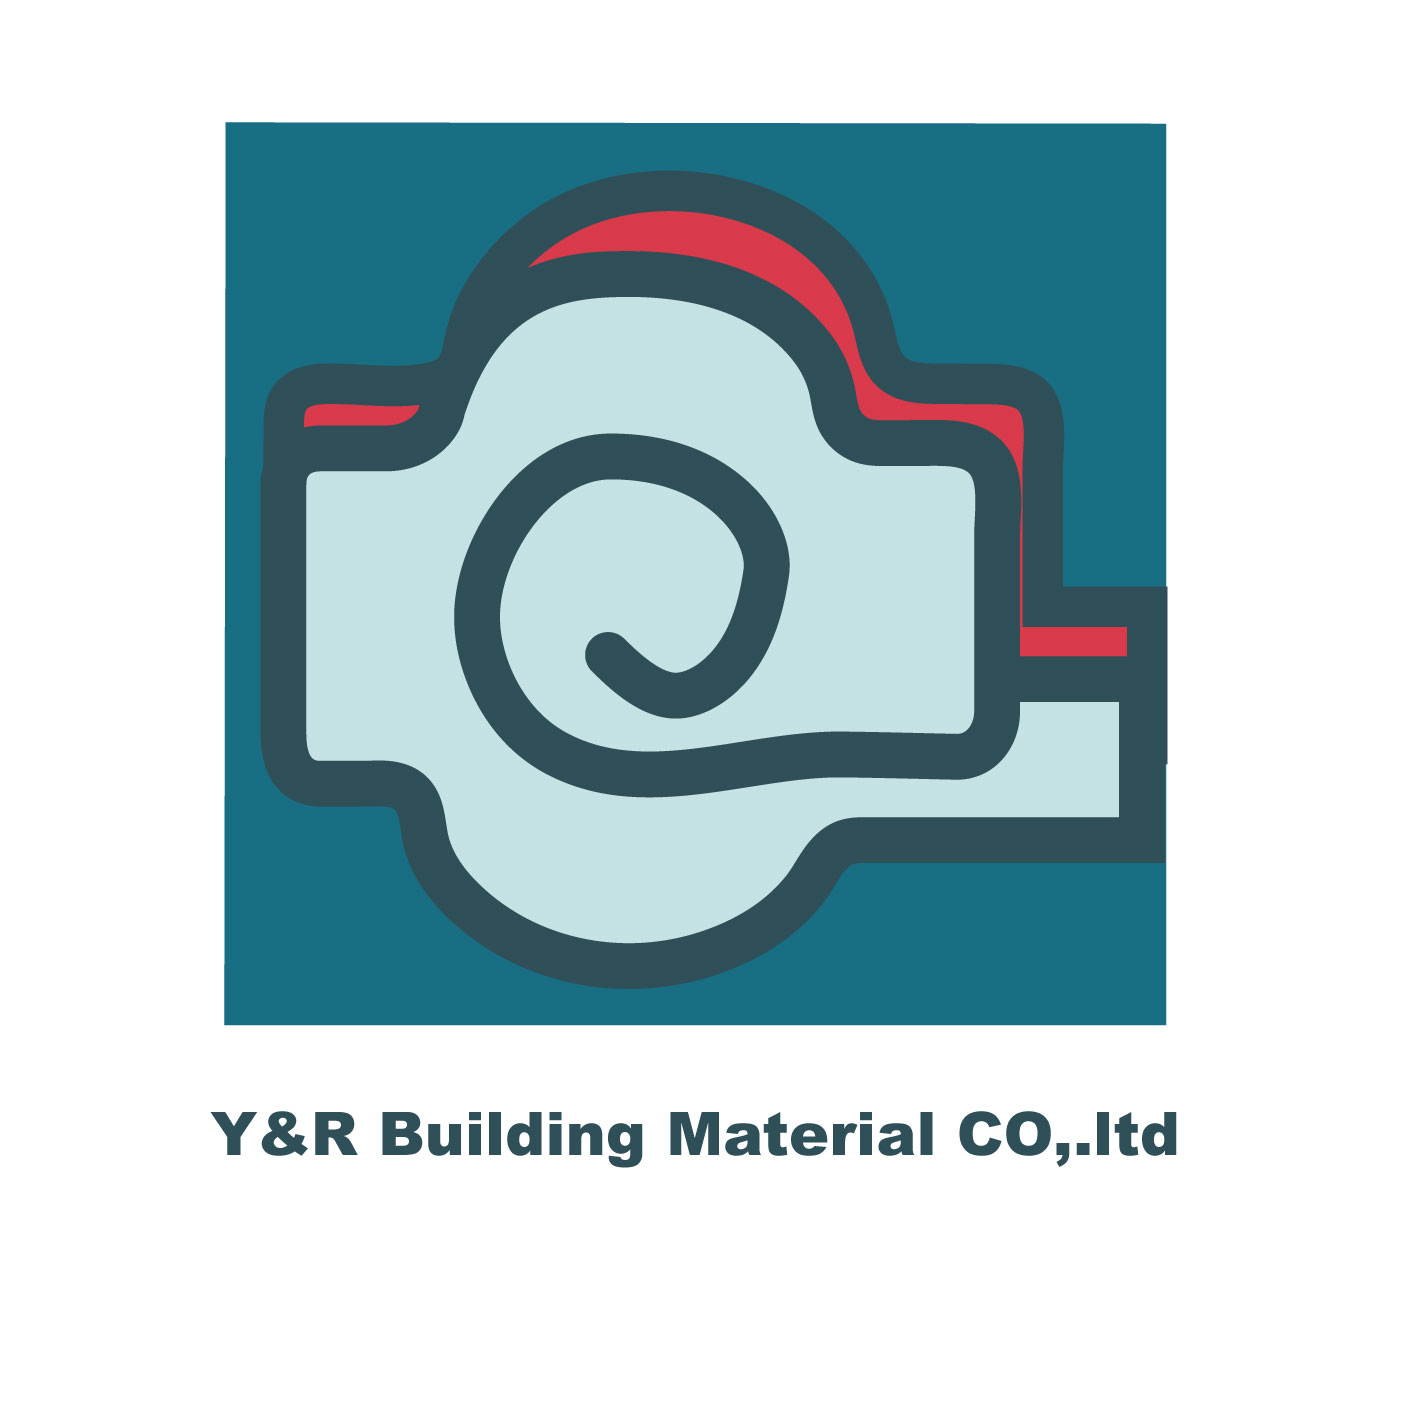 Y&R Building Material Co., Ltd